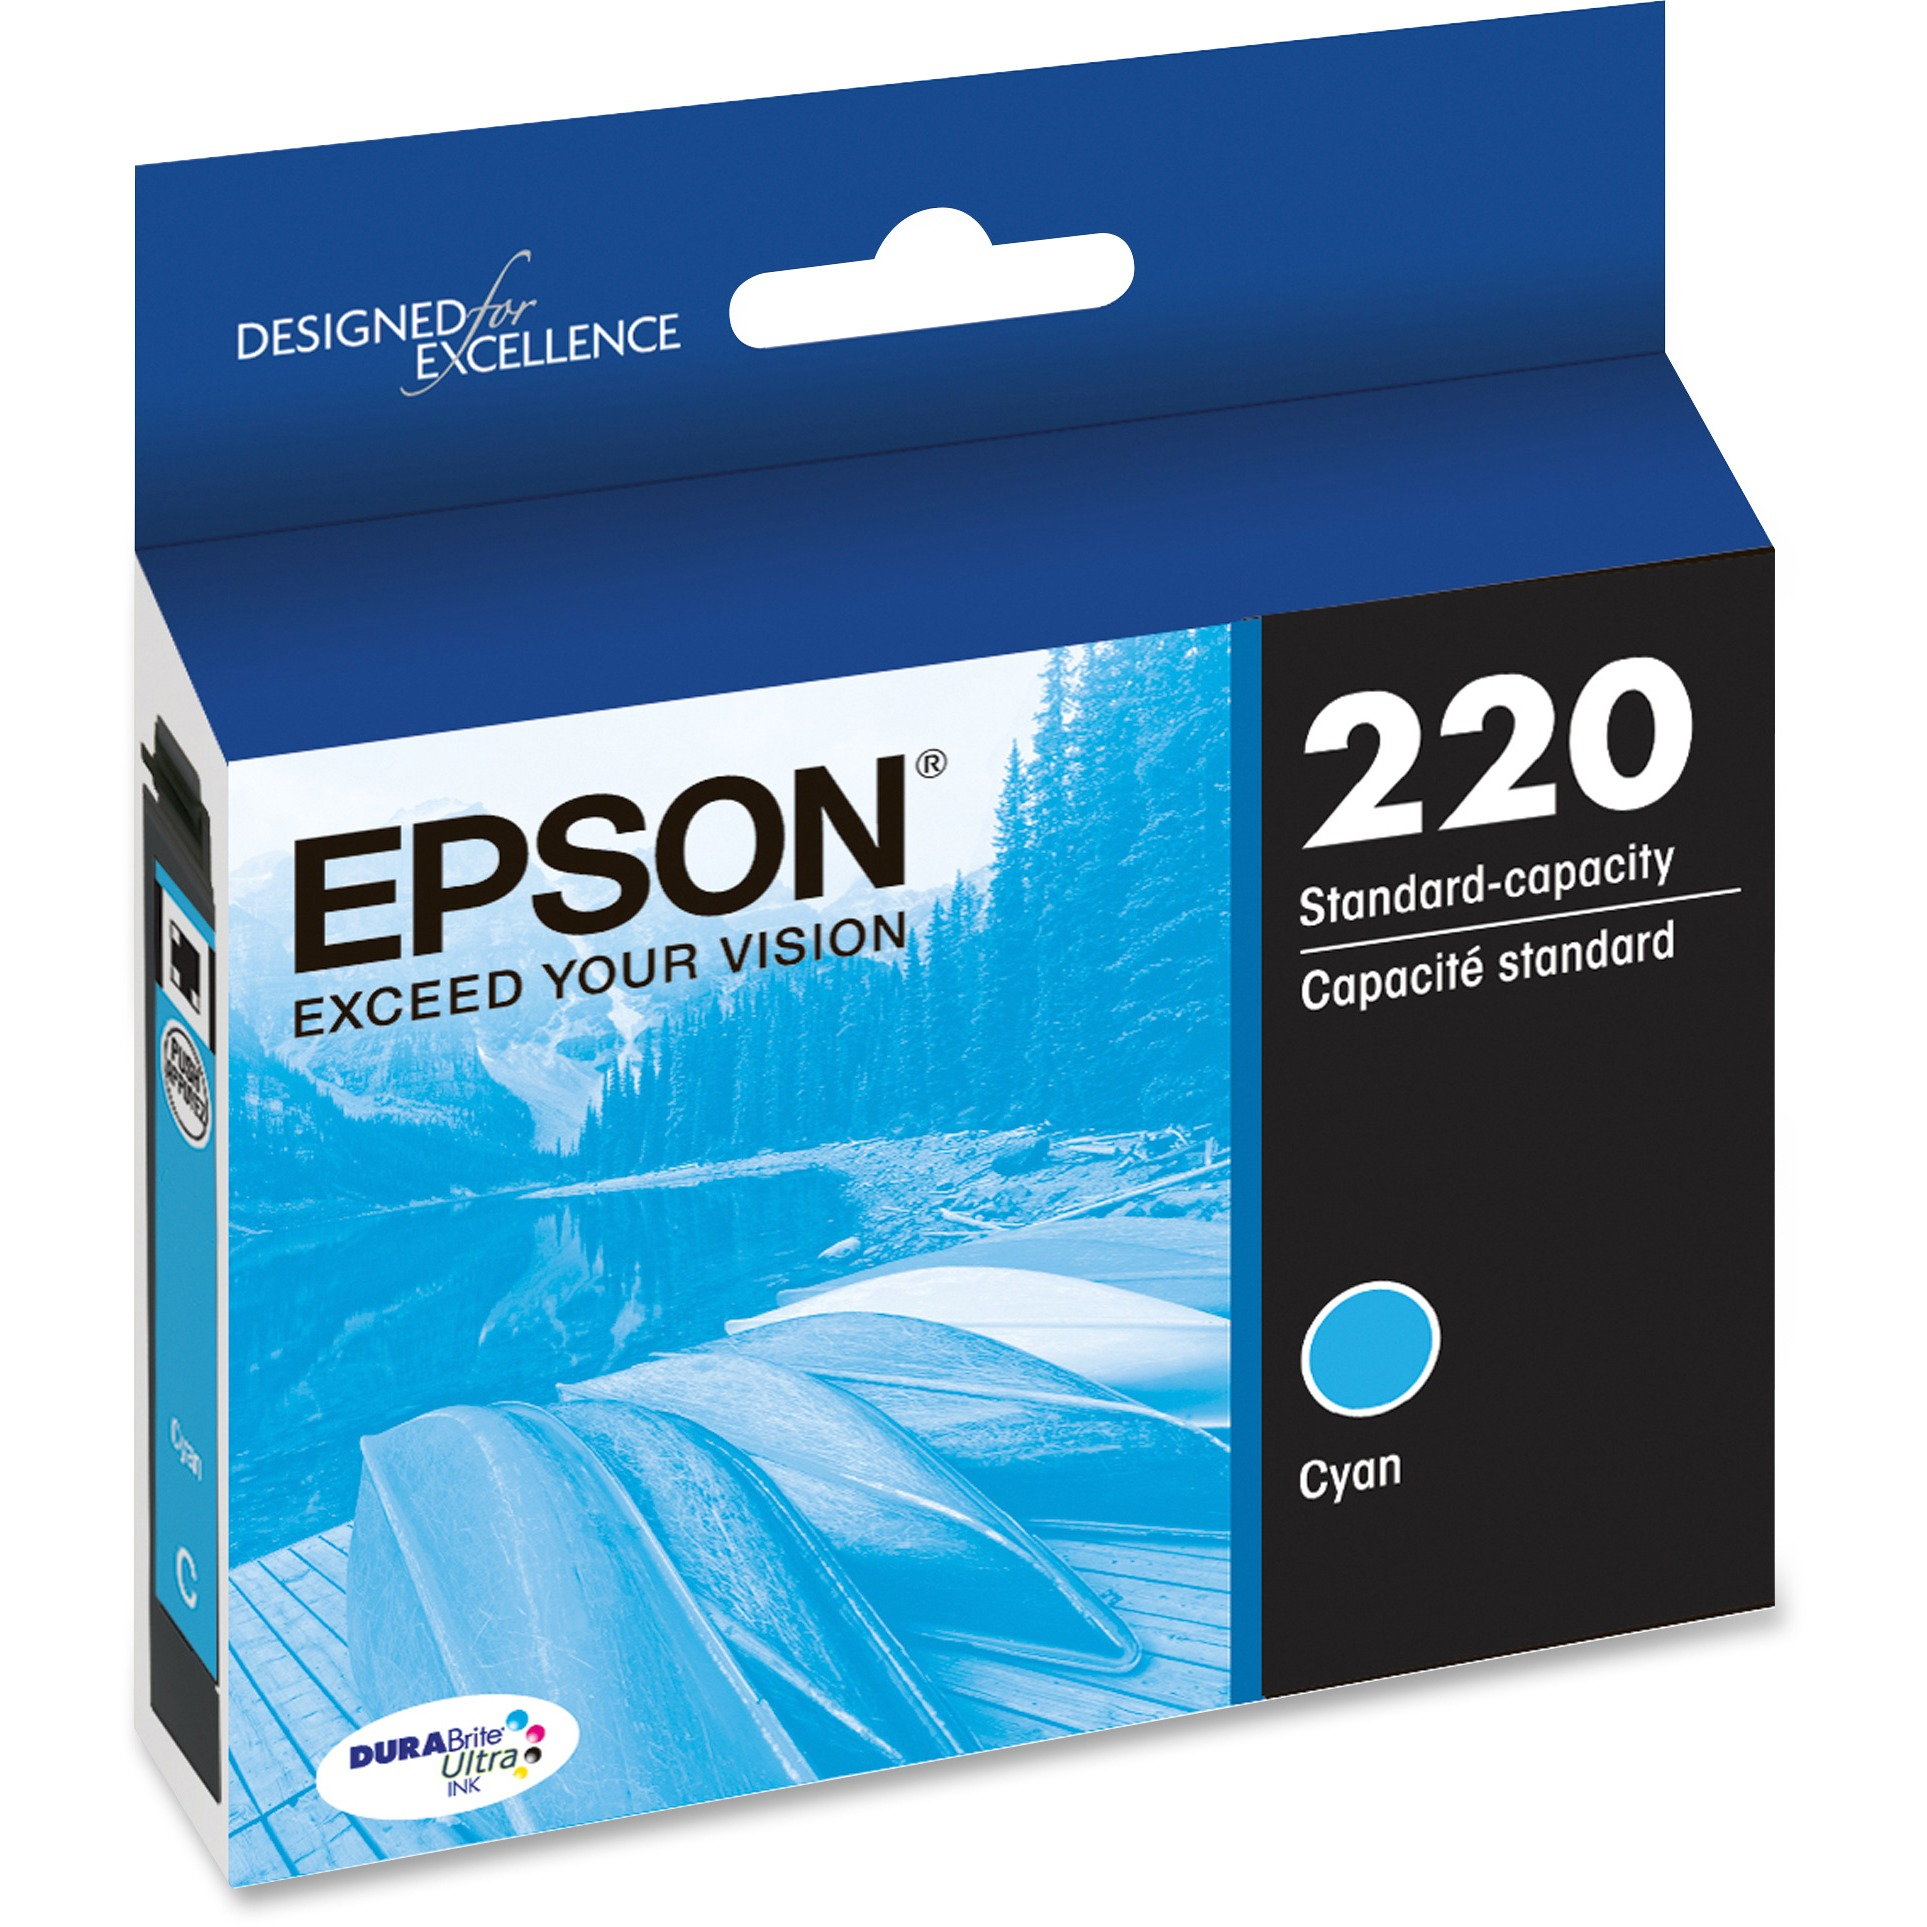 Epson 220 DURABrite Ultra Ink Original Cyan Ink Cartridge